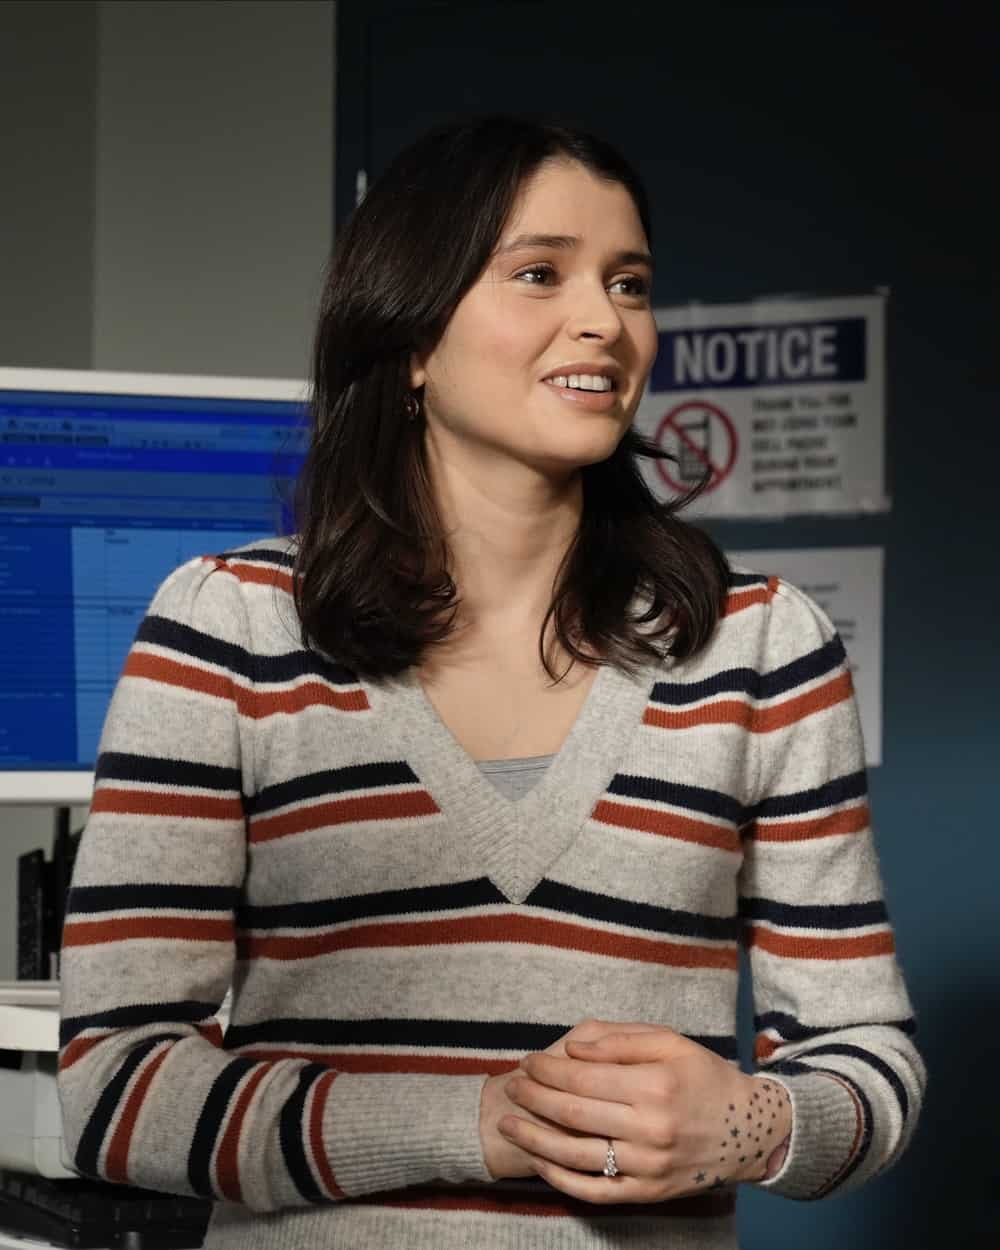 """THE ROOKIE Season 3 Episode 12 - """"Brave Heart"""" – After rushing his son, Henry, to the hospital following his collapse, Nolan is reunited with his ex-wife, Sarah, and they must come together to help their son. Meanwhile, Detective Lopez discovers """"La Fiera"""" is in the same hospital and wants to find out exactly why on """"The Rookie,"""" SUNDAY, MAY 2 (10:00-11:00 p.m. EDT), on ABC. (ABC/Scott Everett White) MADELEINE COGHLAN"""